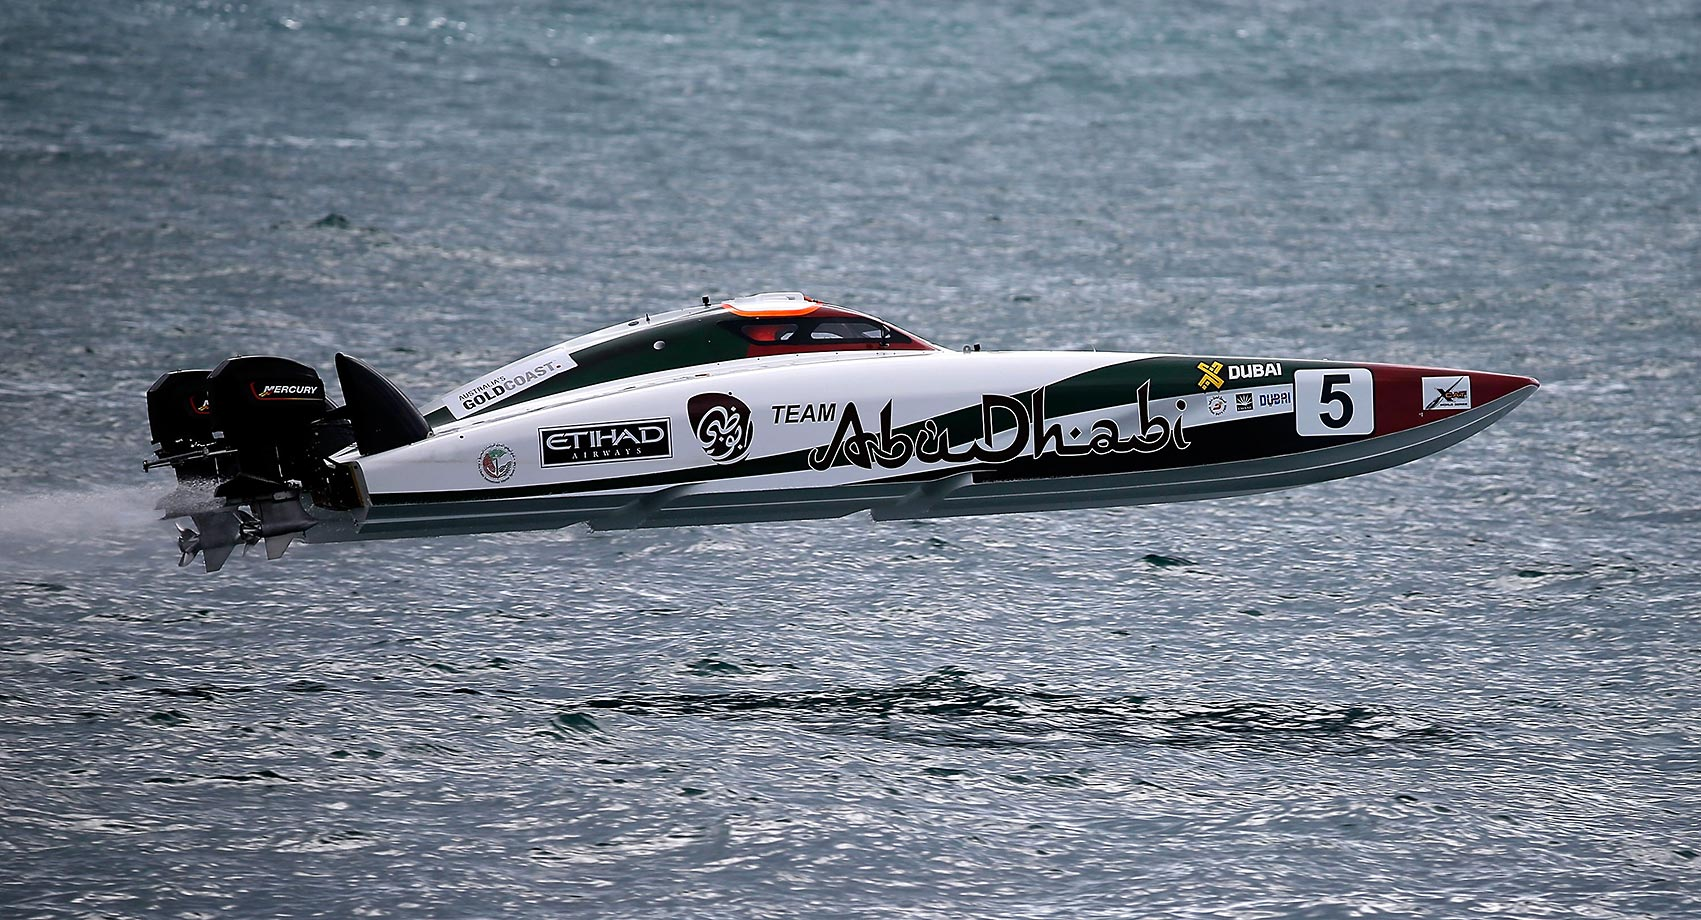 Rashed Suhail Al Tayer and Faleh Khalfan Al Mansoori of Abu Dhabi Team compete in the race for Pole Position on day 1 of the Gold Coast GP.  XCAT, short for extreme catamaran, is one of the most challenging and extreme forms of powerboat racing in the world.